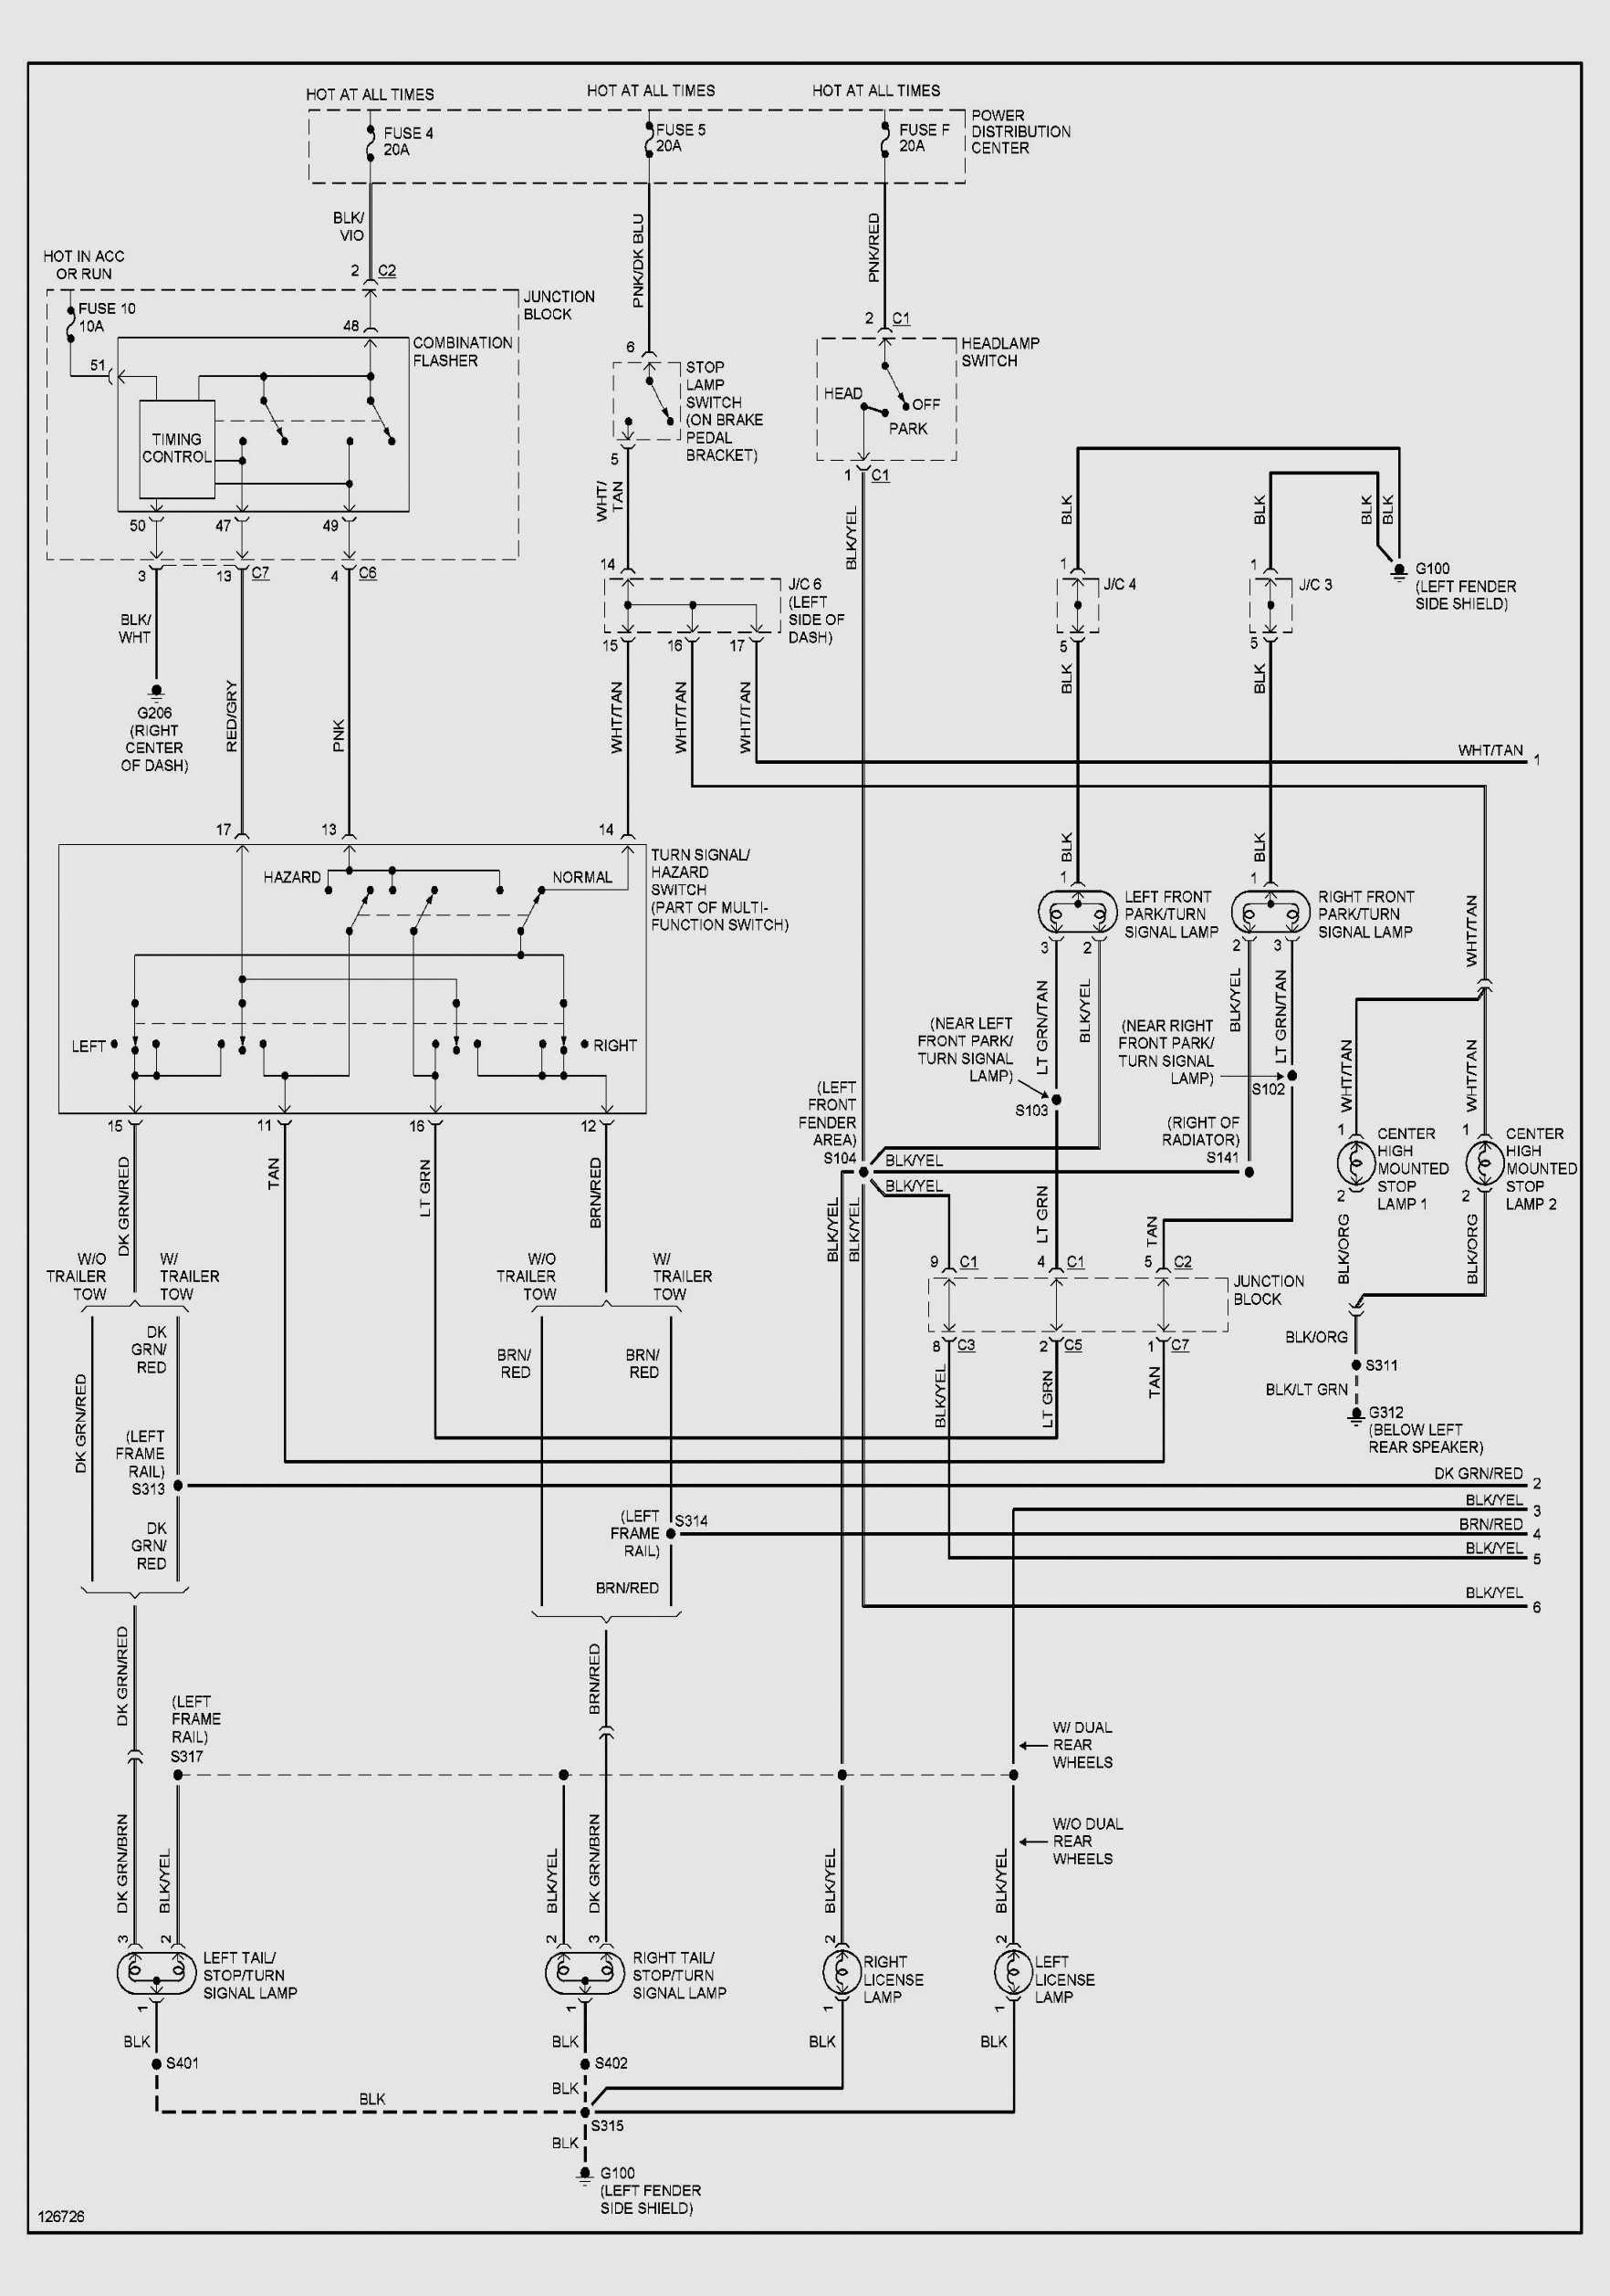 Diagram Wiring Diagram For 94 Jeep Cherokee Full Version